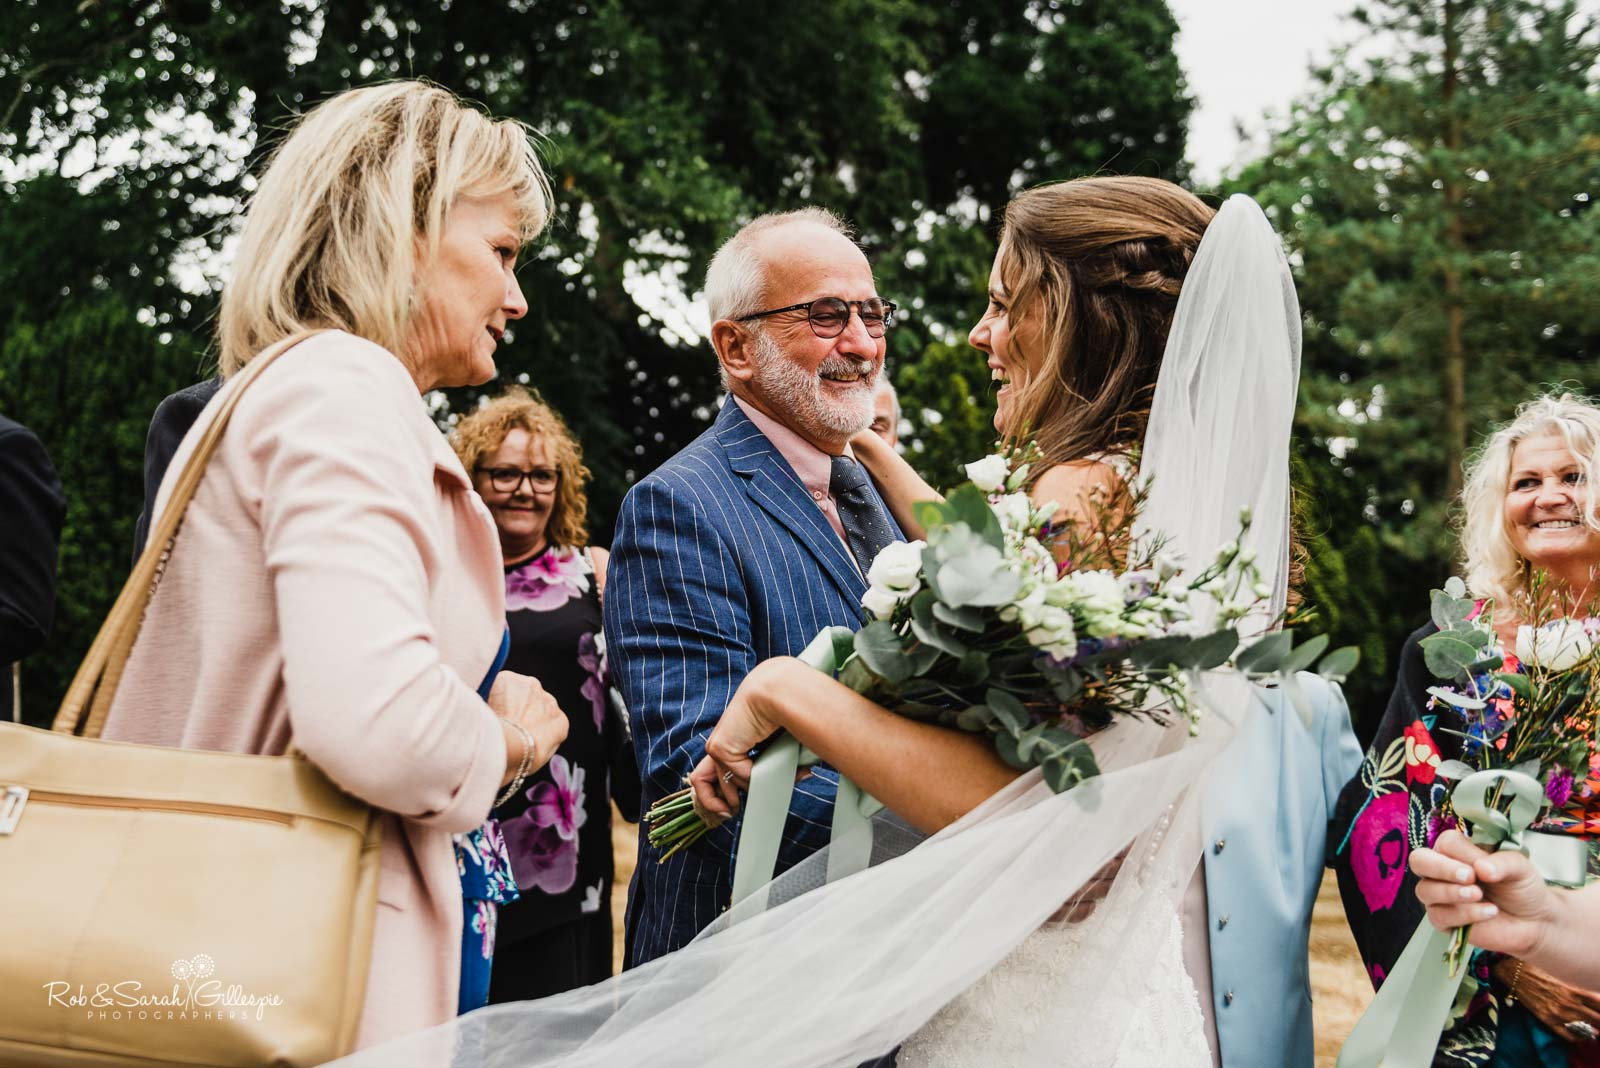 Natural and relaxed wedding photography at St Giles church Packwood